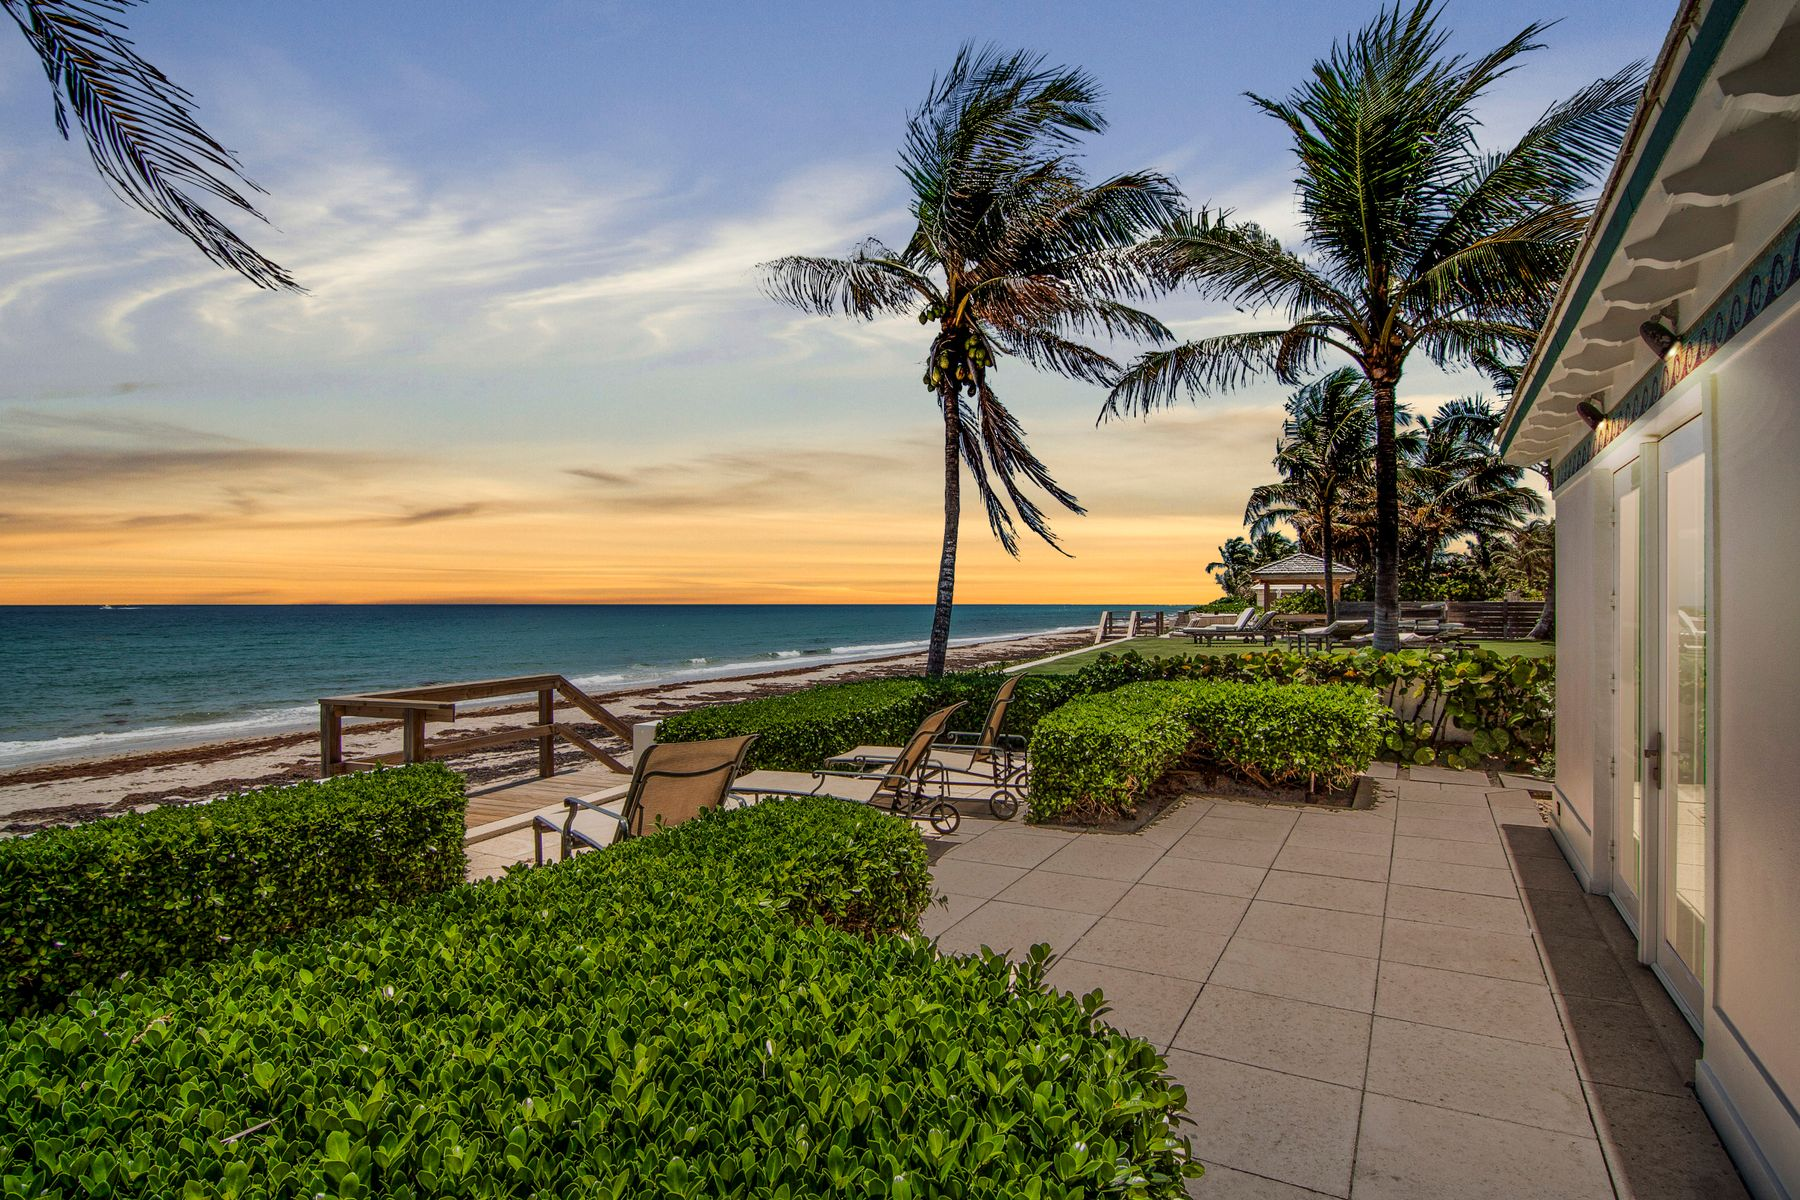 Single Family Homes for Sale at Classic Beach House 101 Nightingale Trl, Palm Beach, Florida 33480 United States